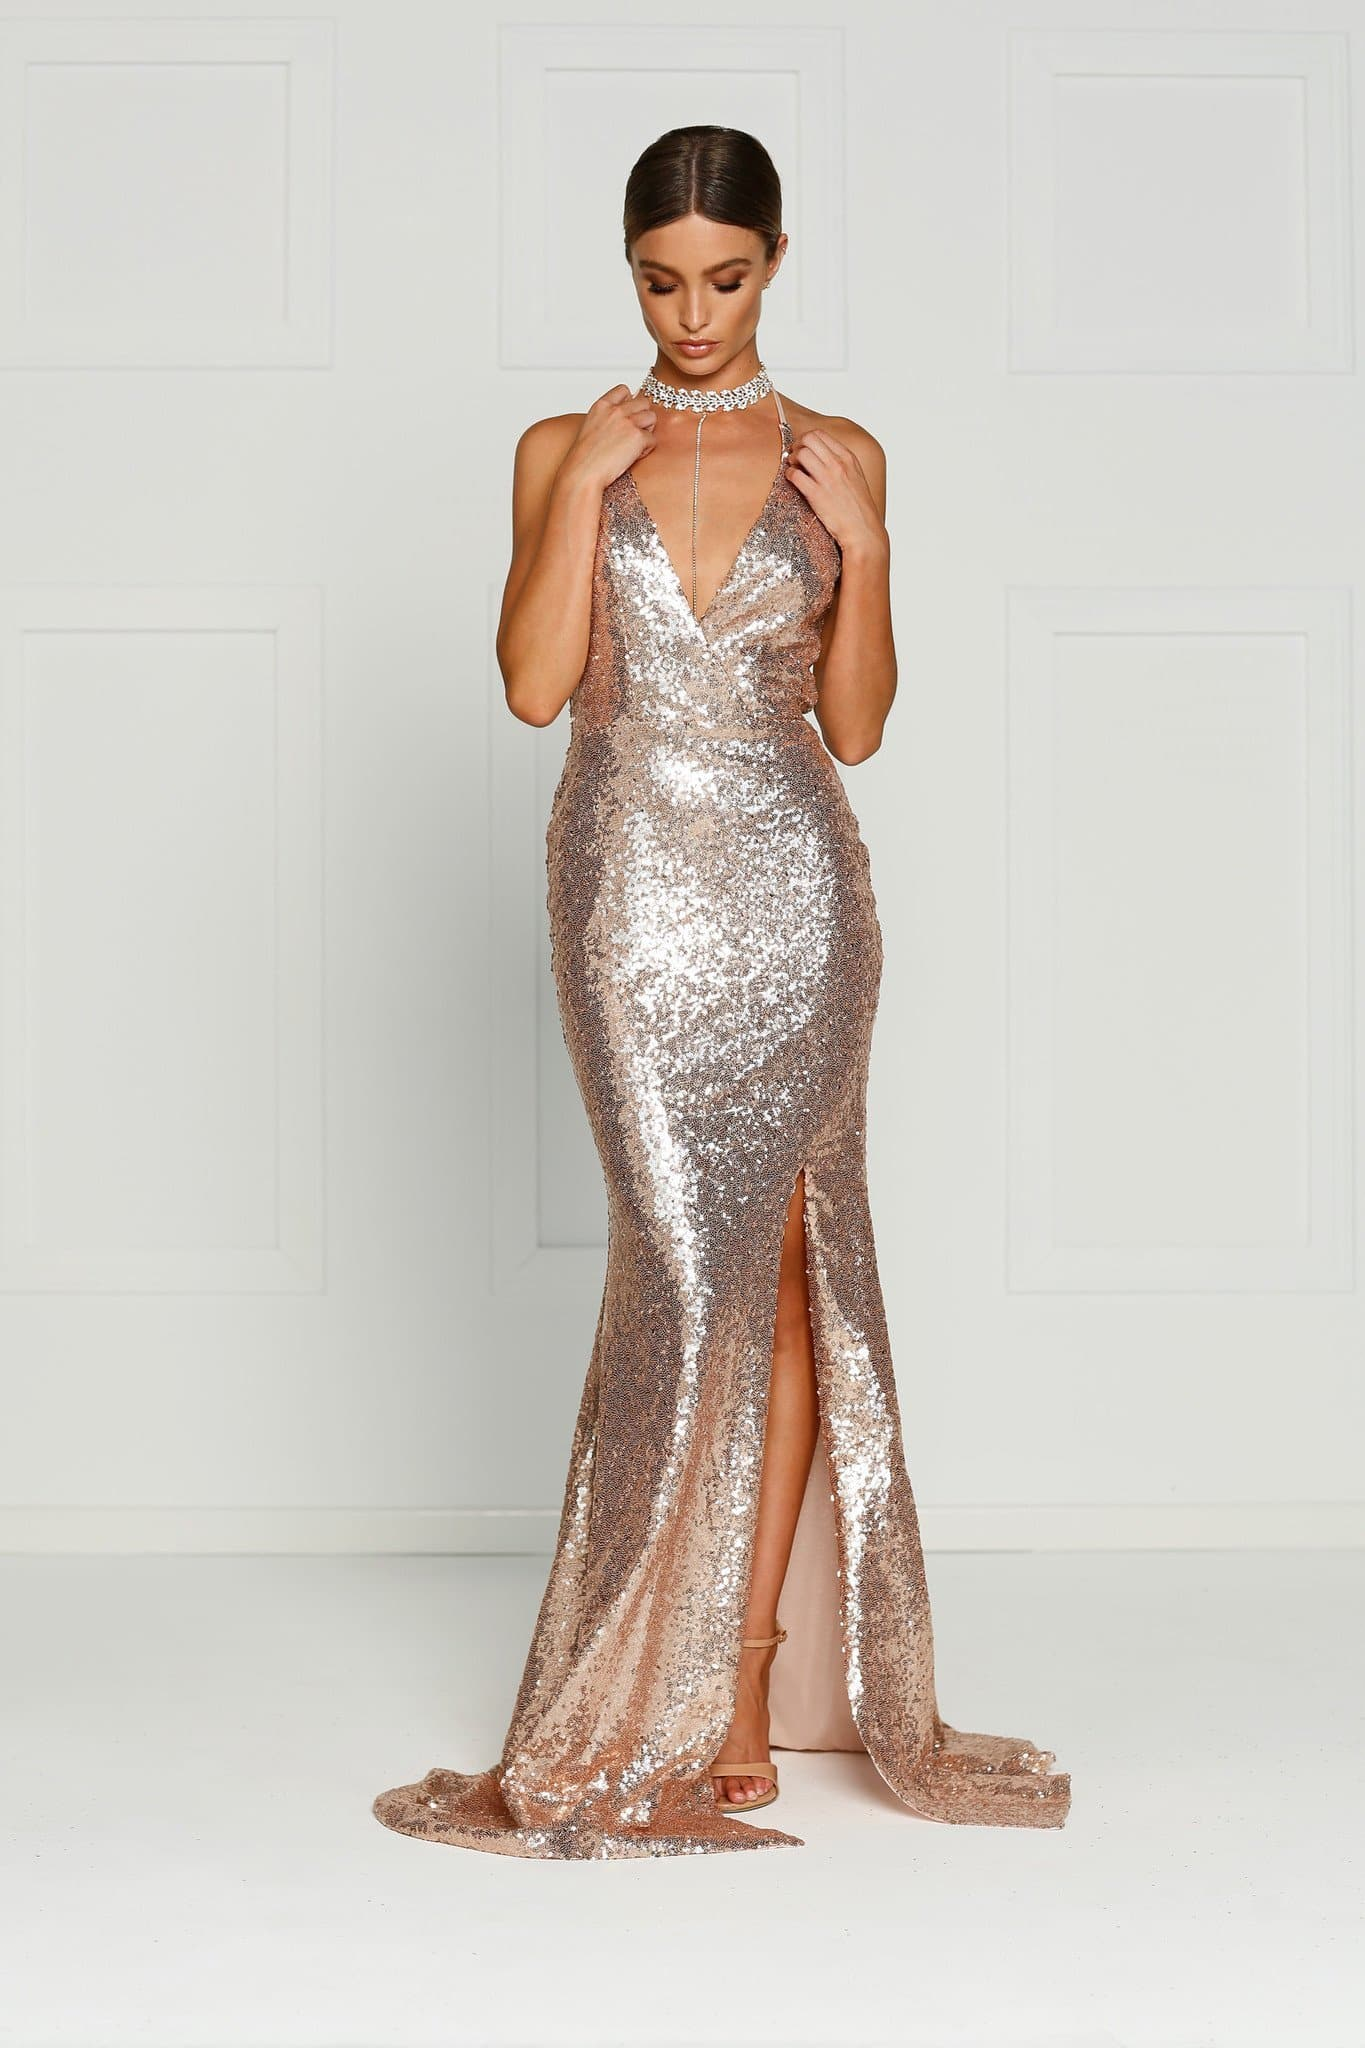 A&N Kylie- Rose Gold Sequin Dress with Low Back and Side Slit